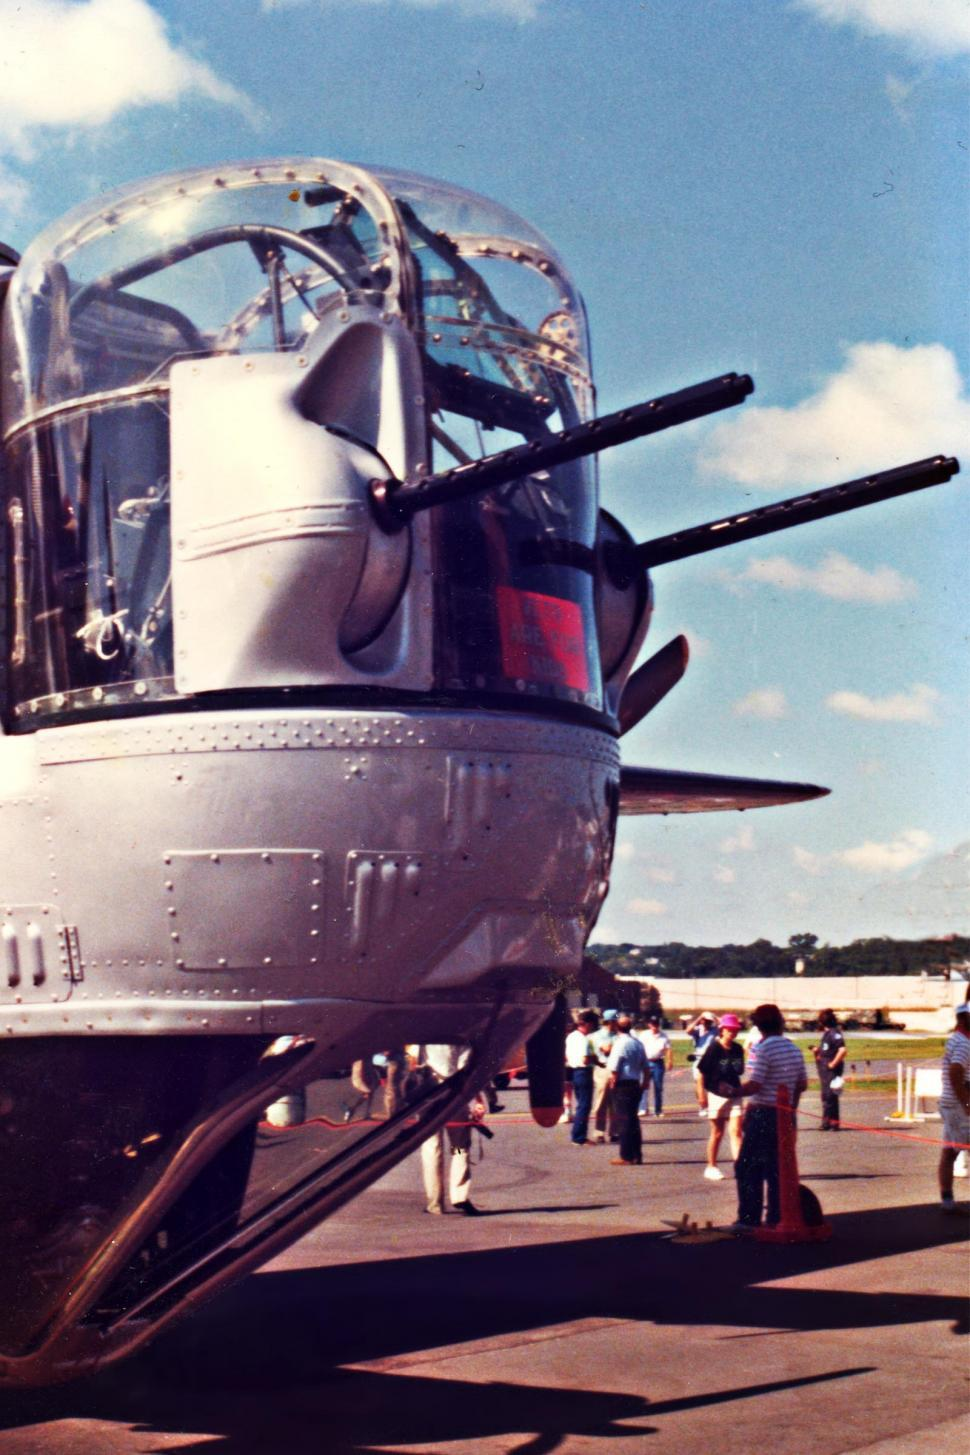 Download Free Stock HD Photo of B-24 Liberator bomber nose turret Online